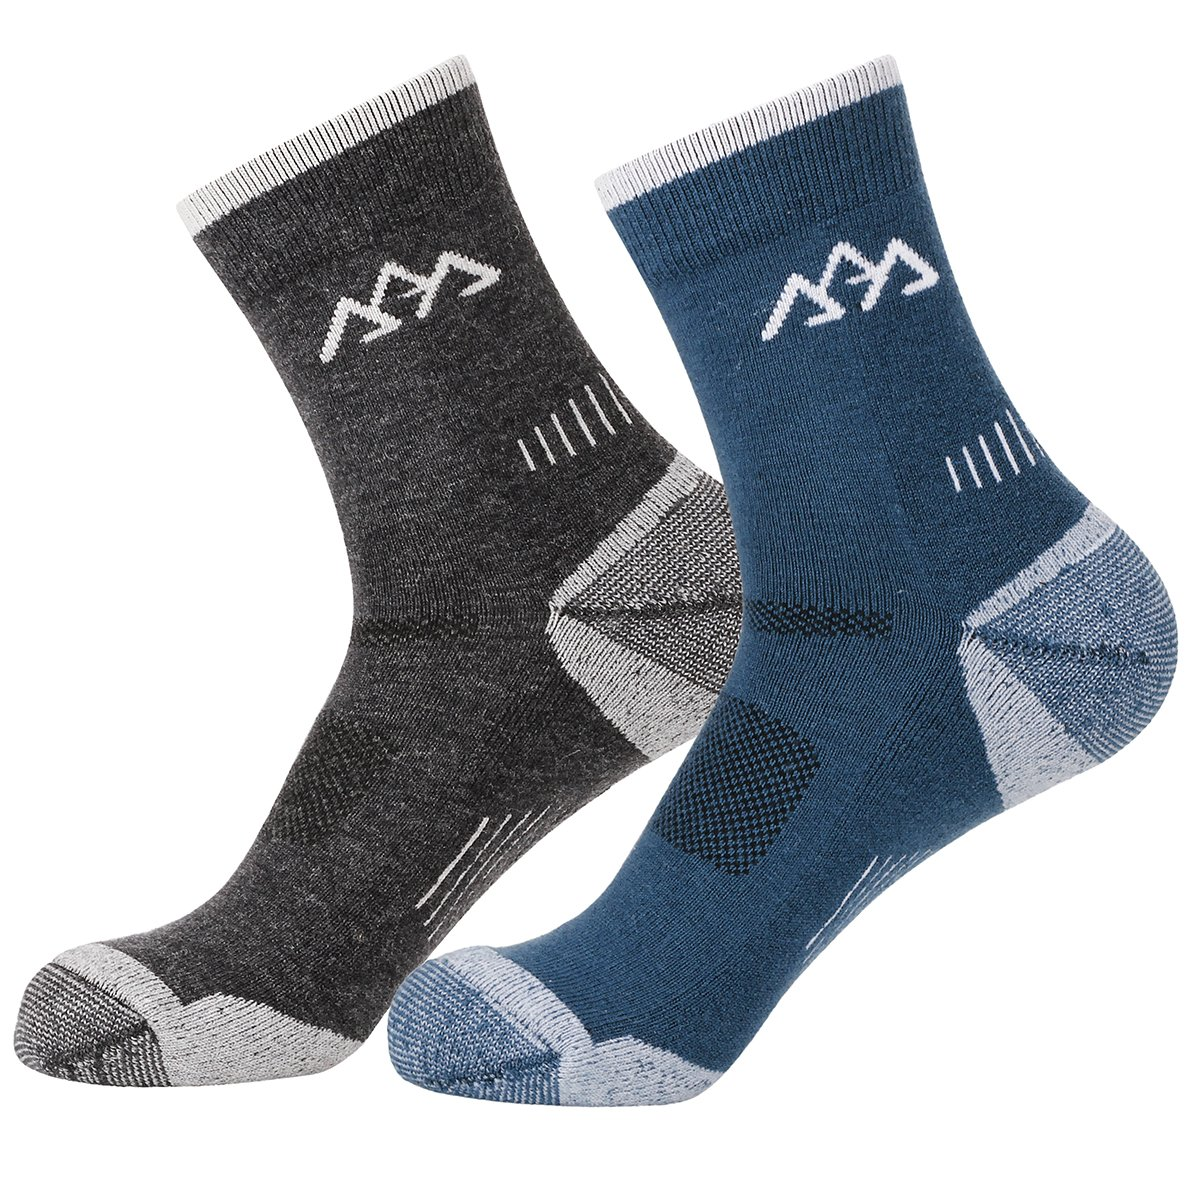 2 Pack Merino Wool Men's Hiking Socks, Half Full Thickness For Trekking Mountaineering